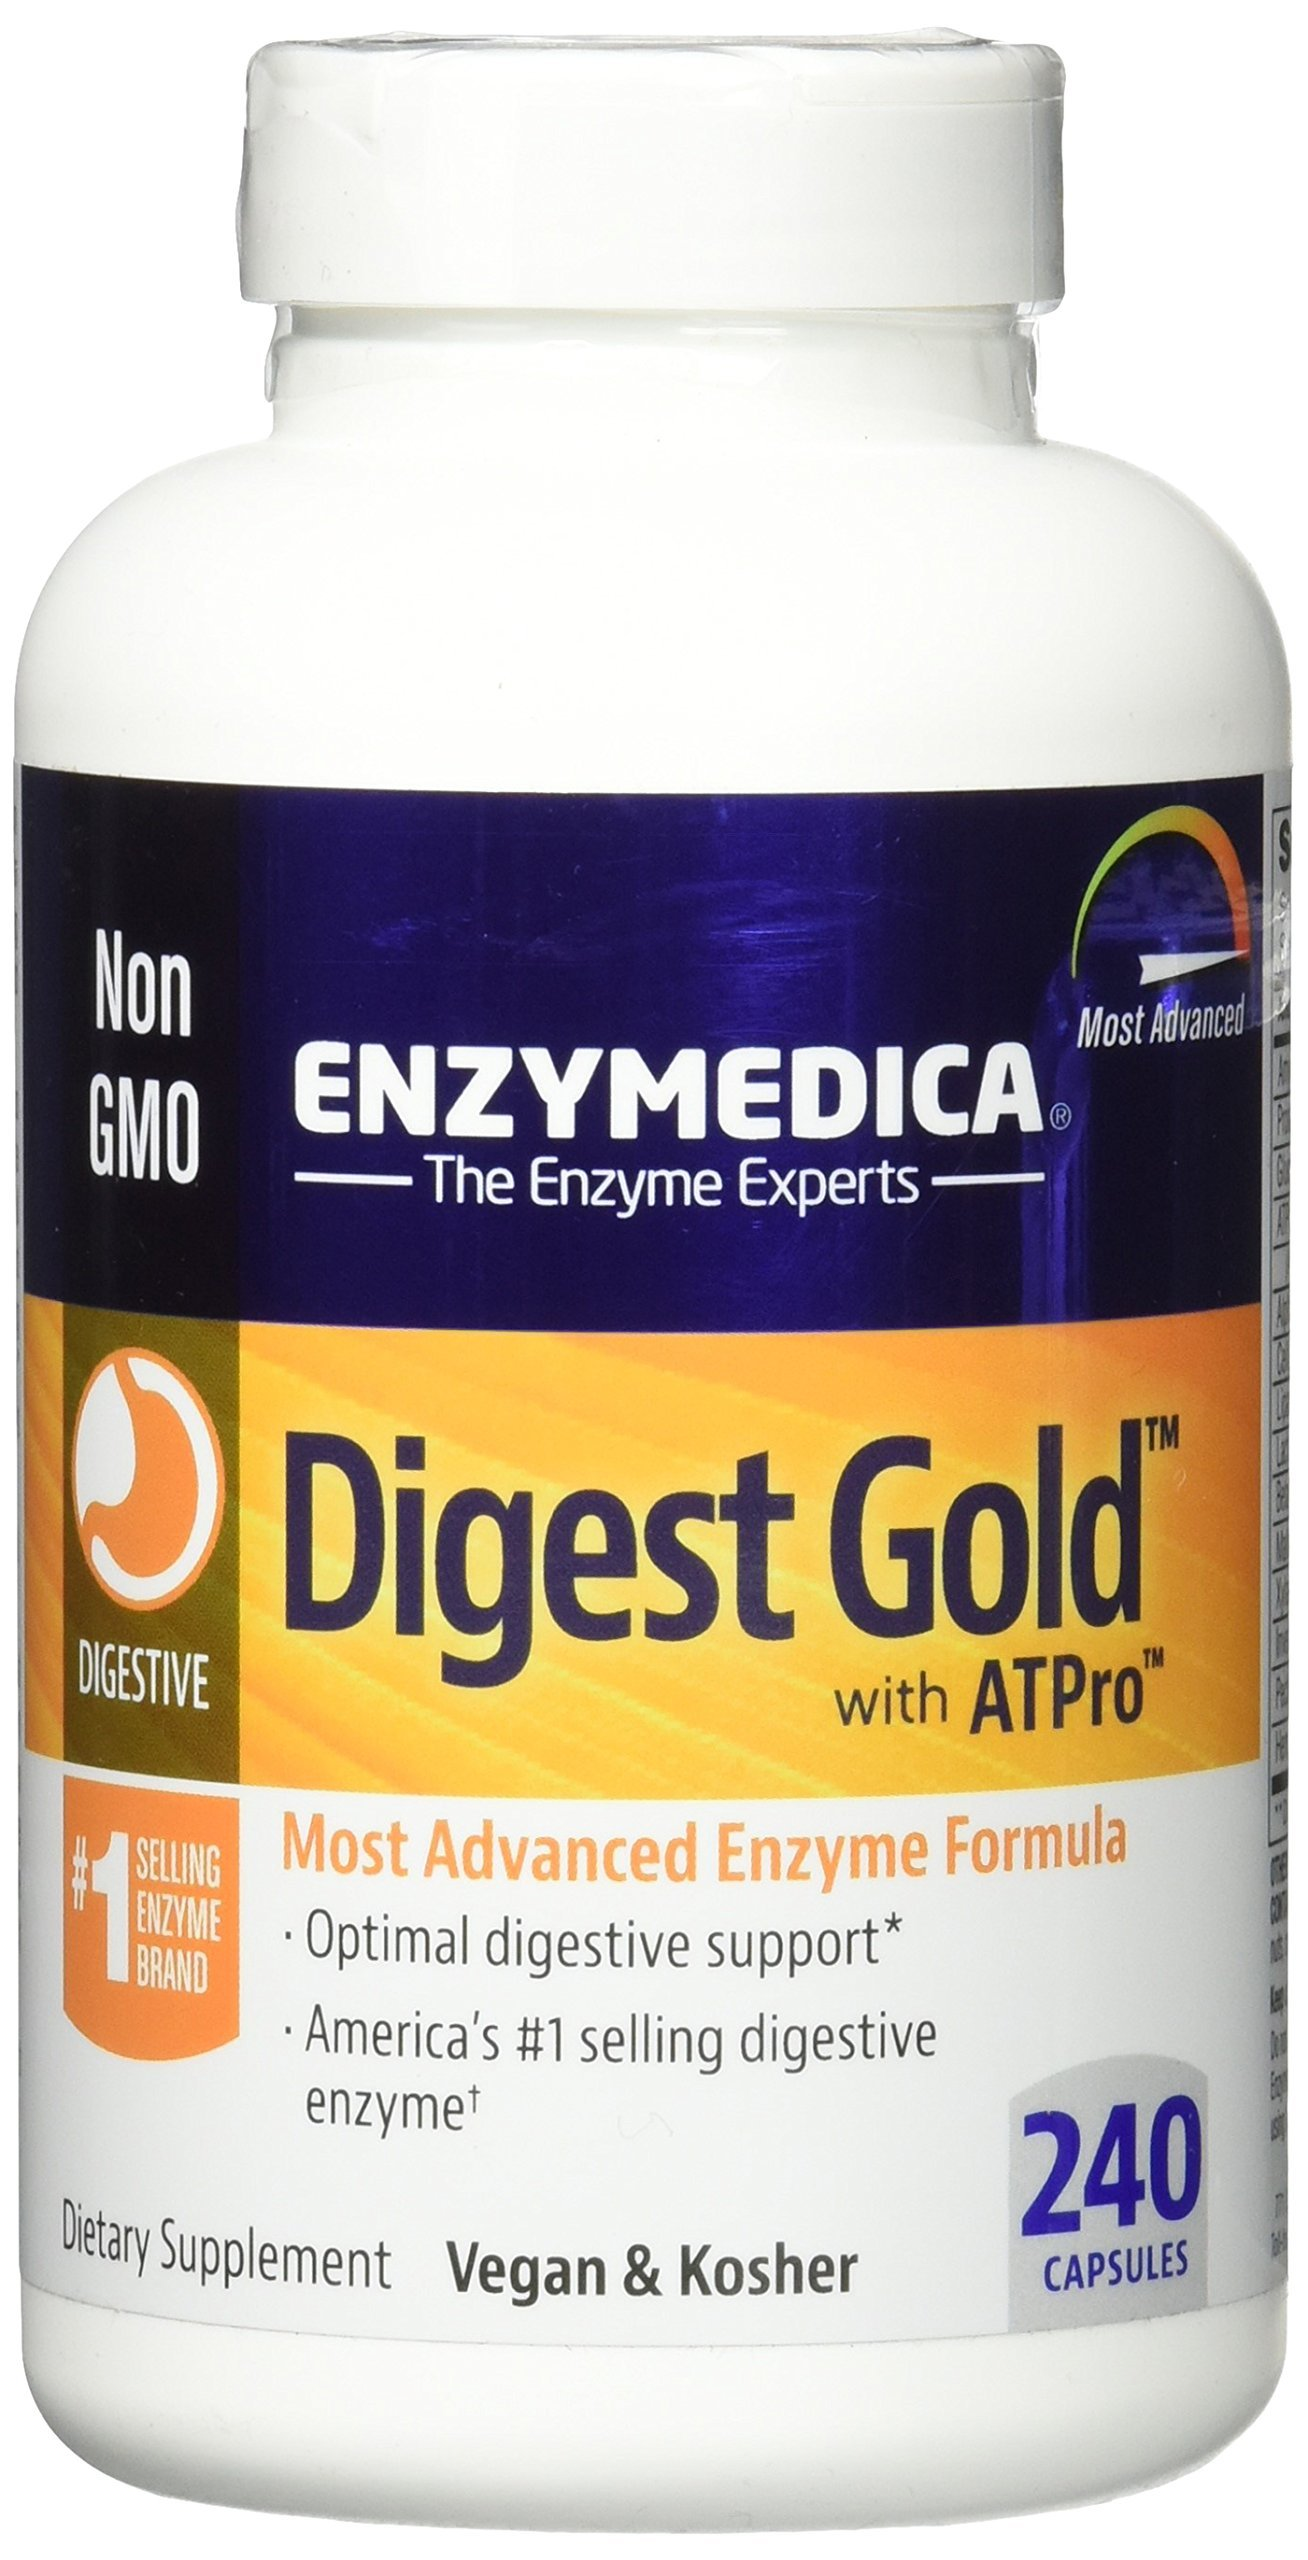 Digest Gold with Atpro 240 Capsules Enzyme